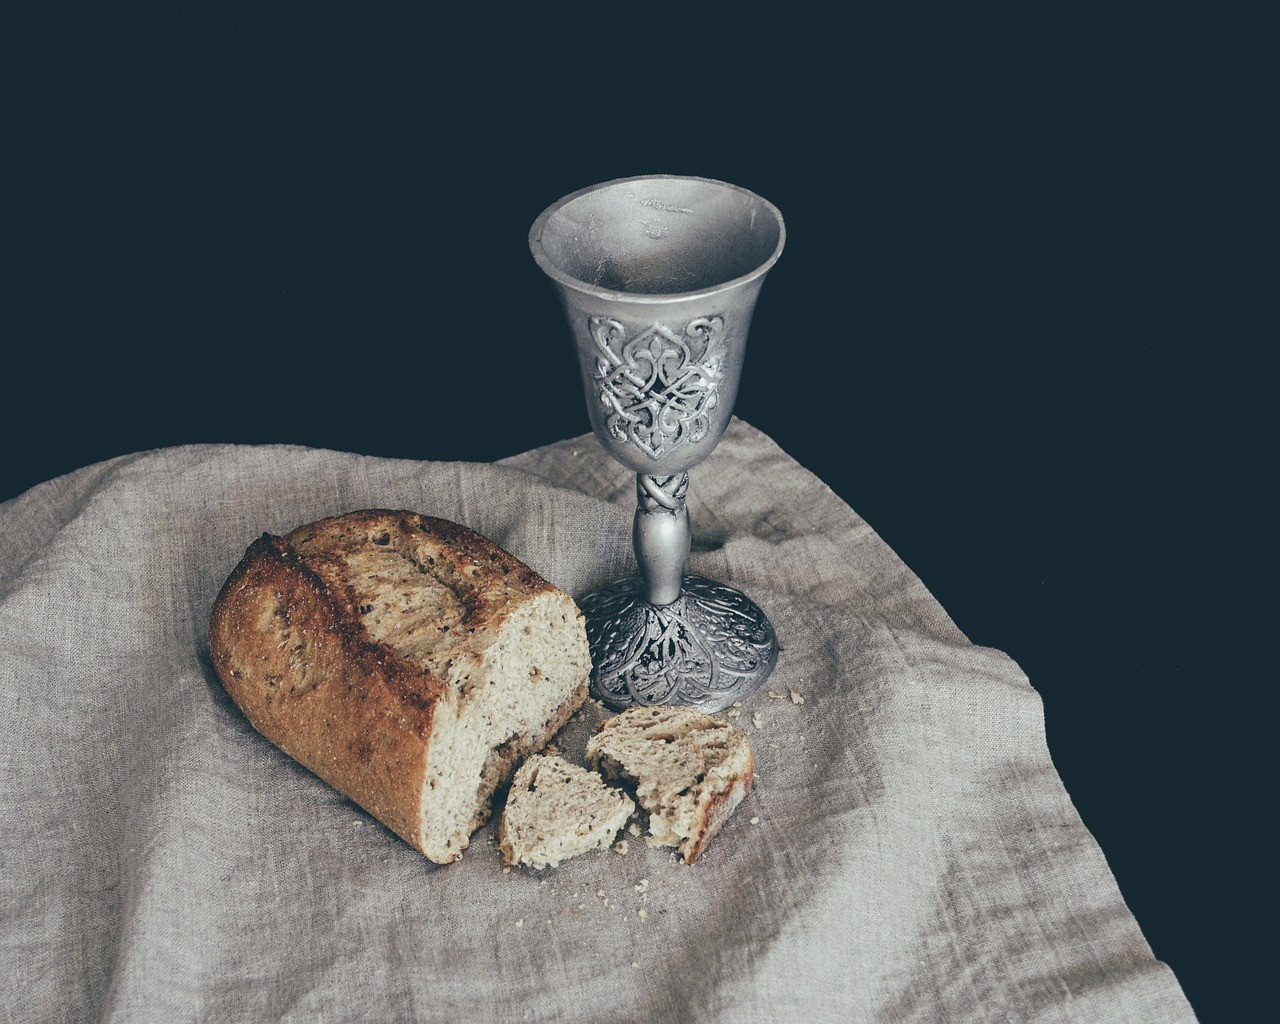 The Lord's Supper: Past, Present, Future